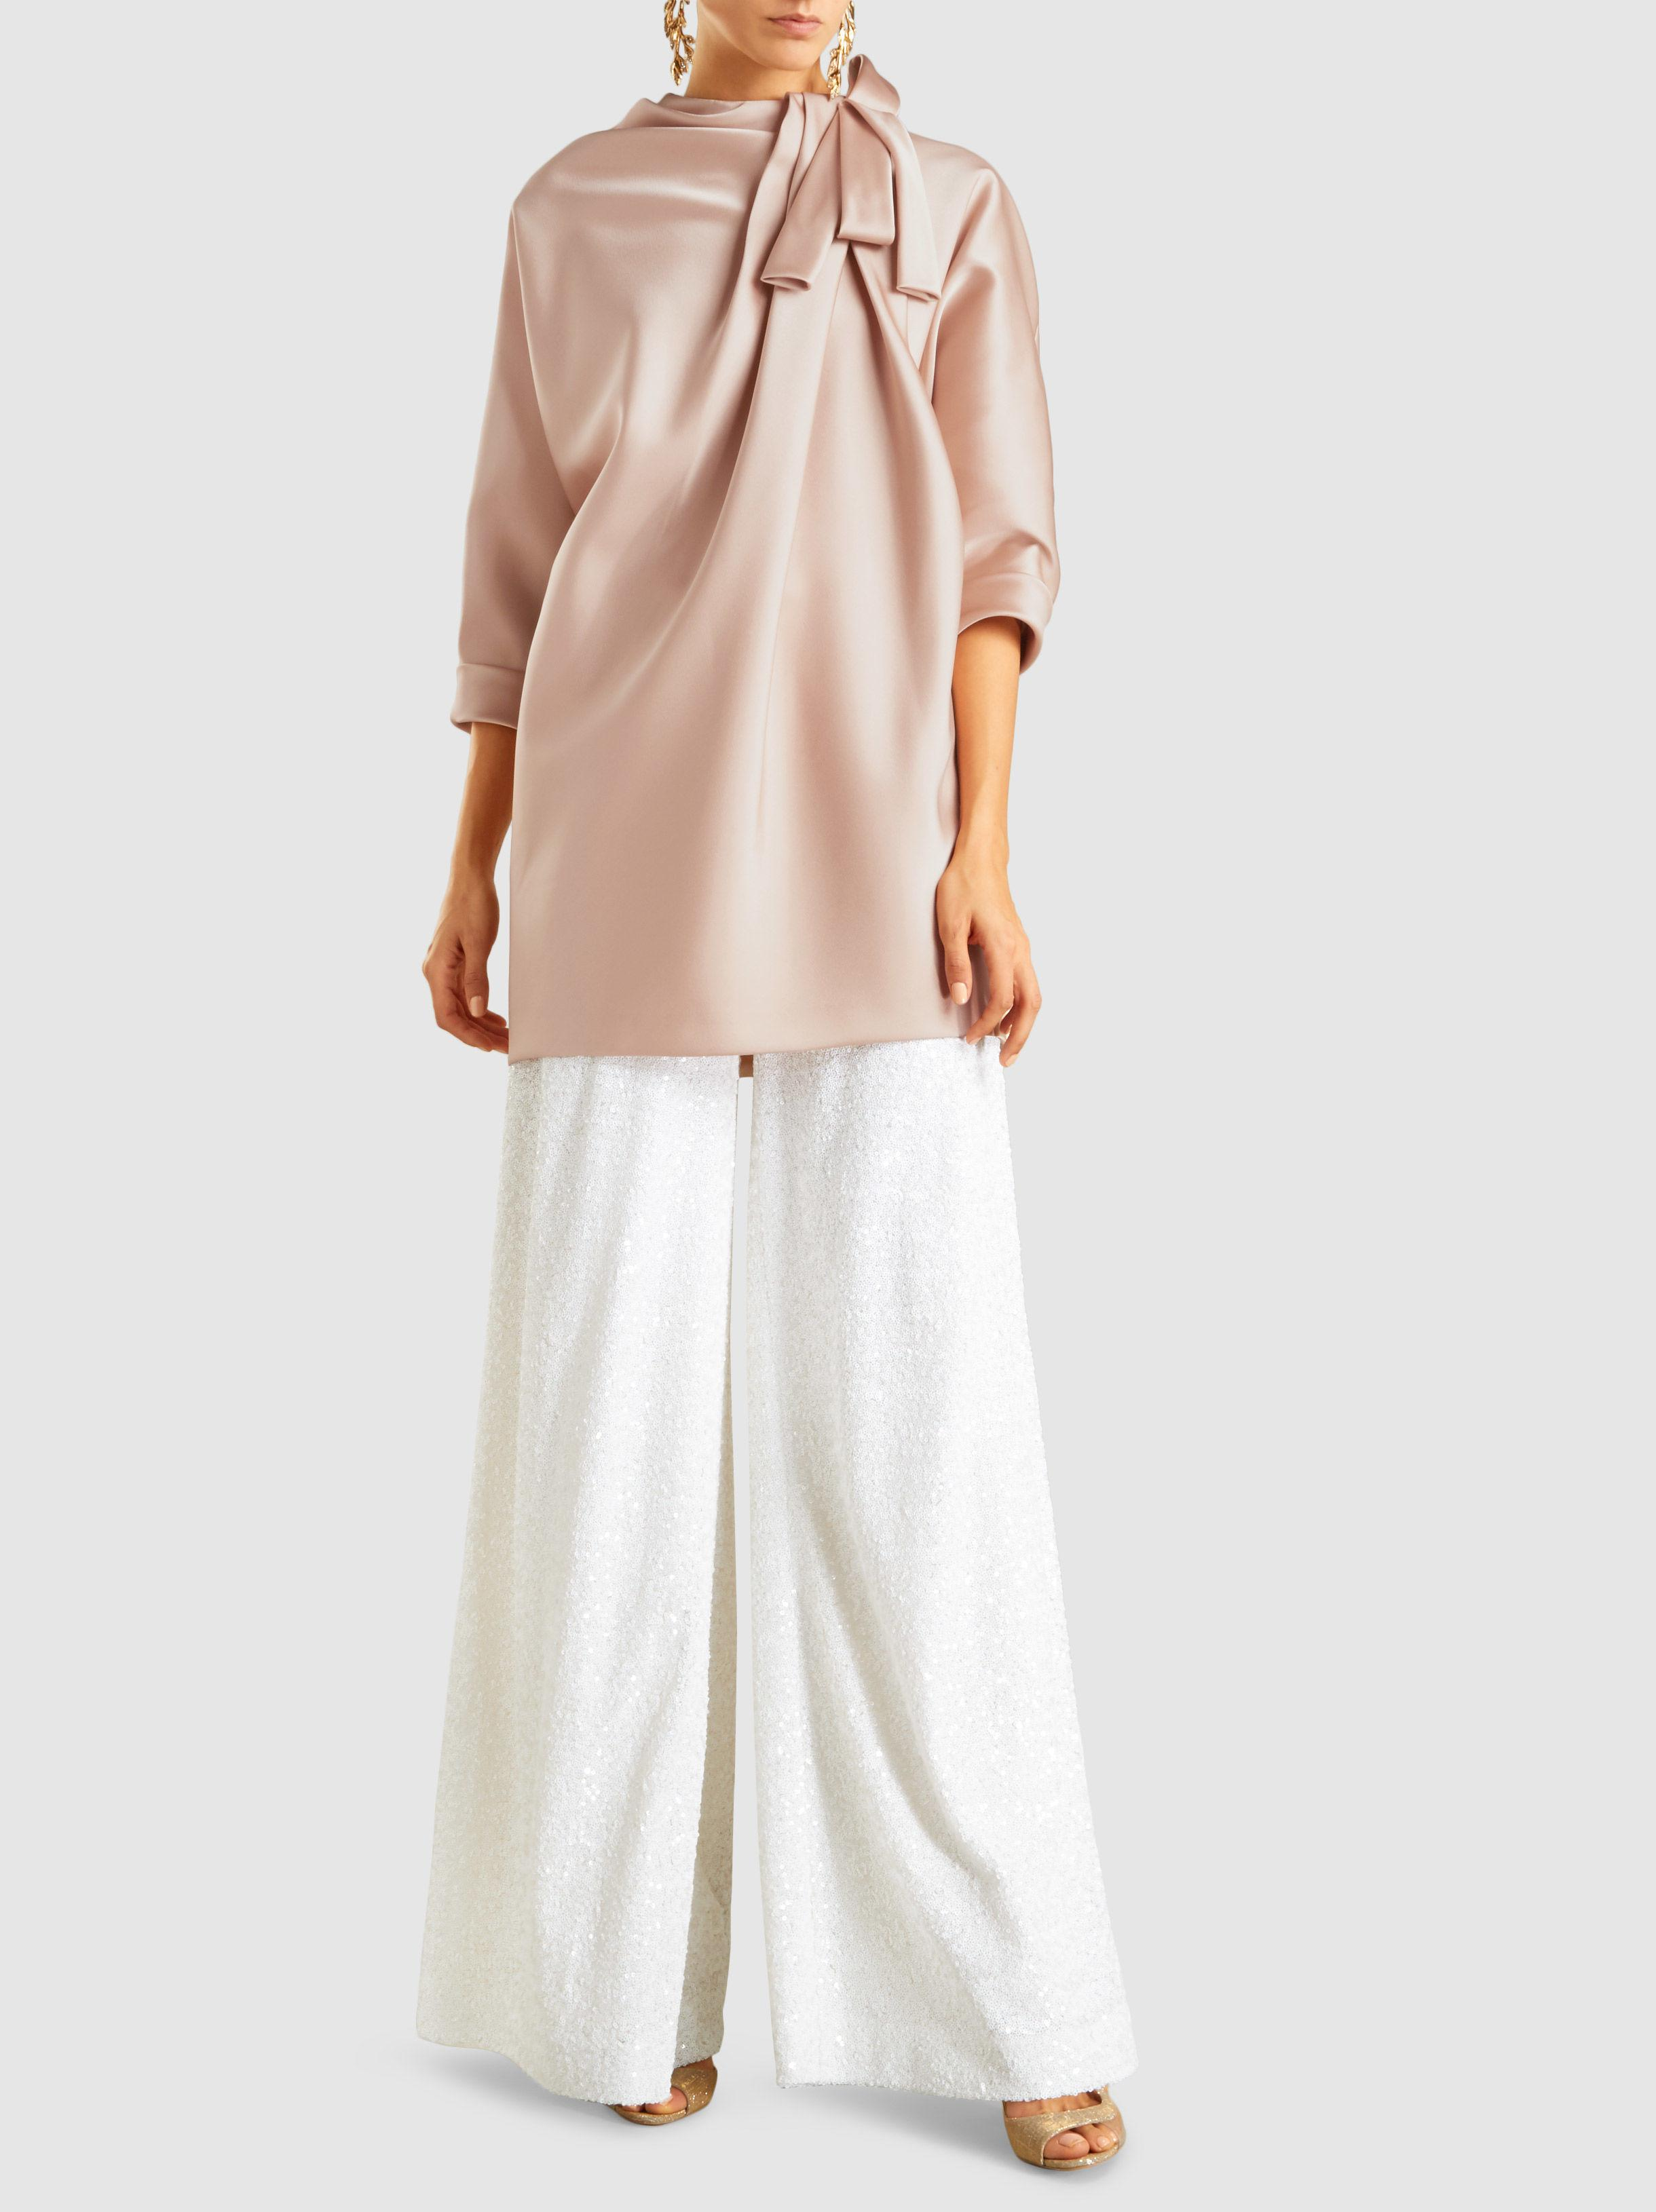 Dolman Sleeve Tunic With Bow Detail Marc Jacobs Best Supplier Outlet Footlocker Visit New For Nice Sale Online Discount Hot Sale uJTYL